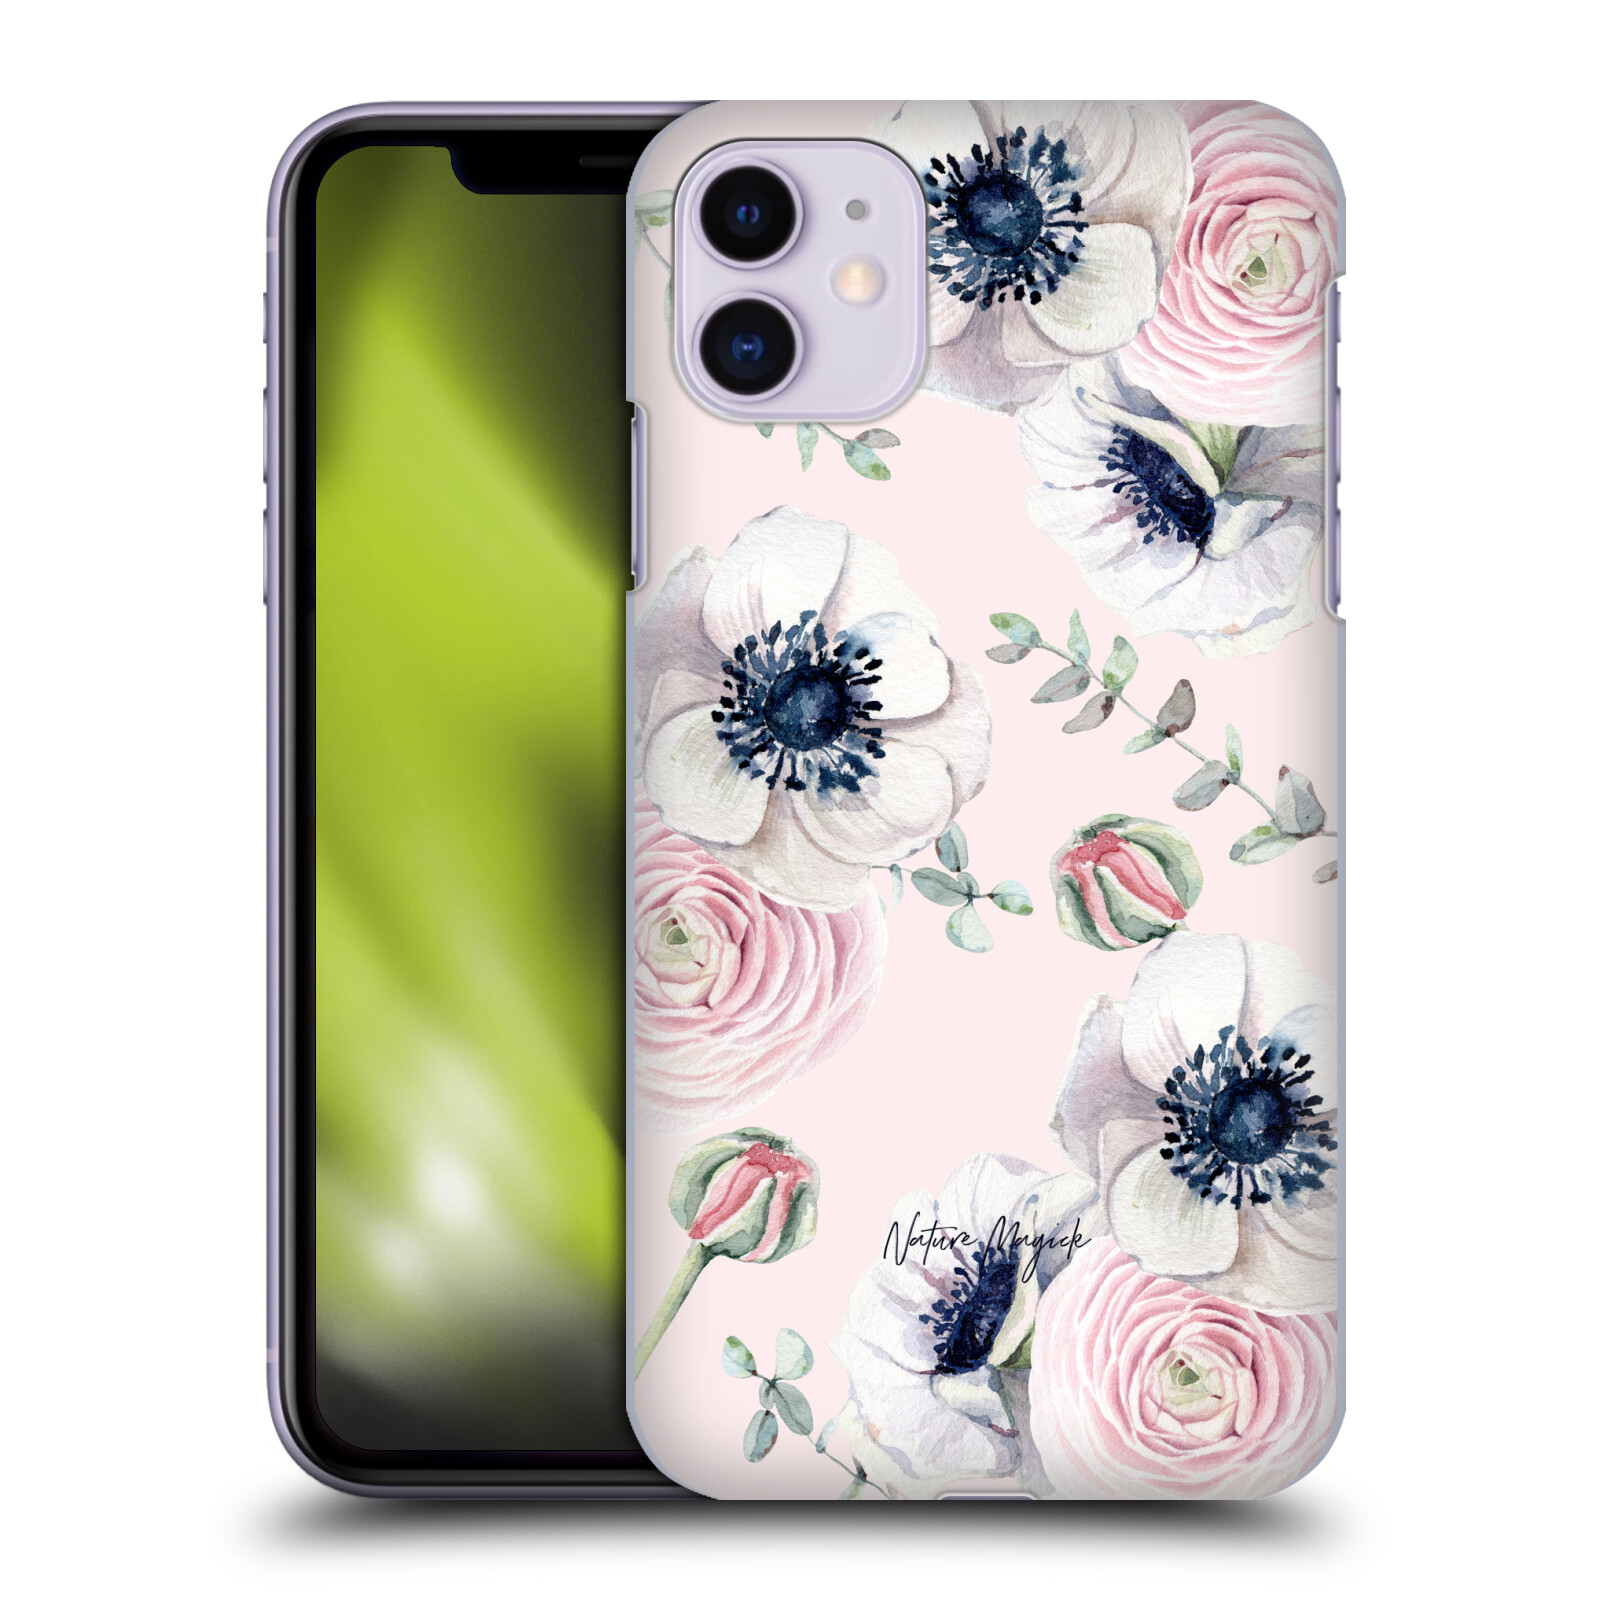 Official Nature Magick Pretty Watercolor Roses Floral Pastel Pink Floral Garden Back Case for Apple iPhone 11